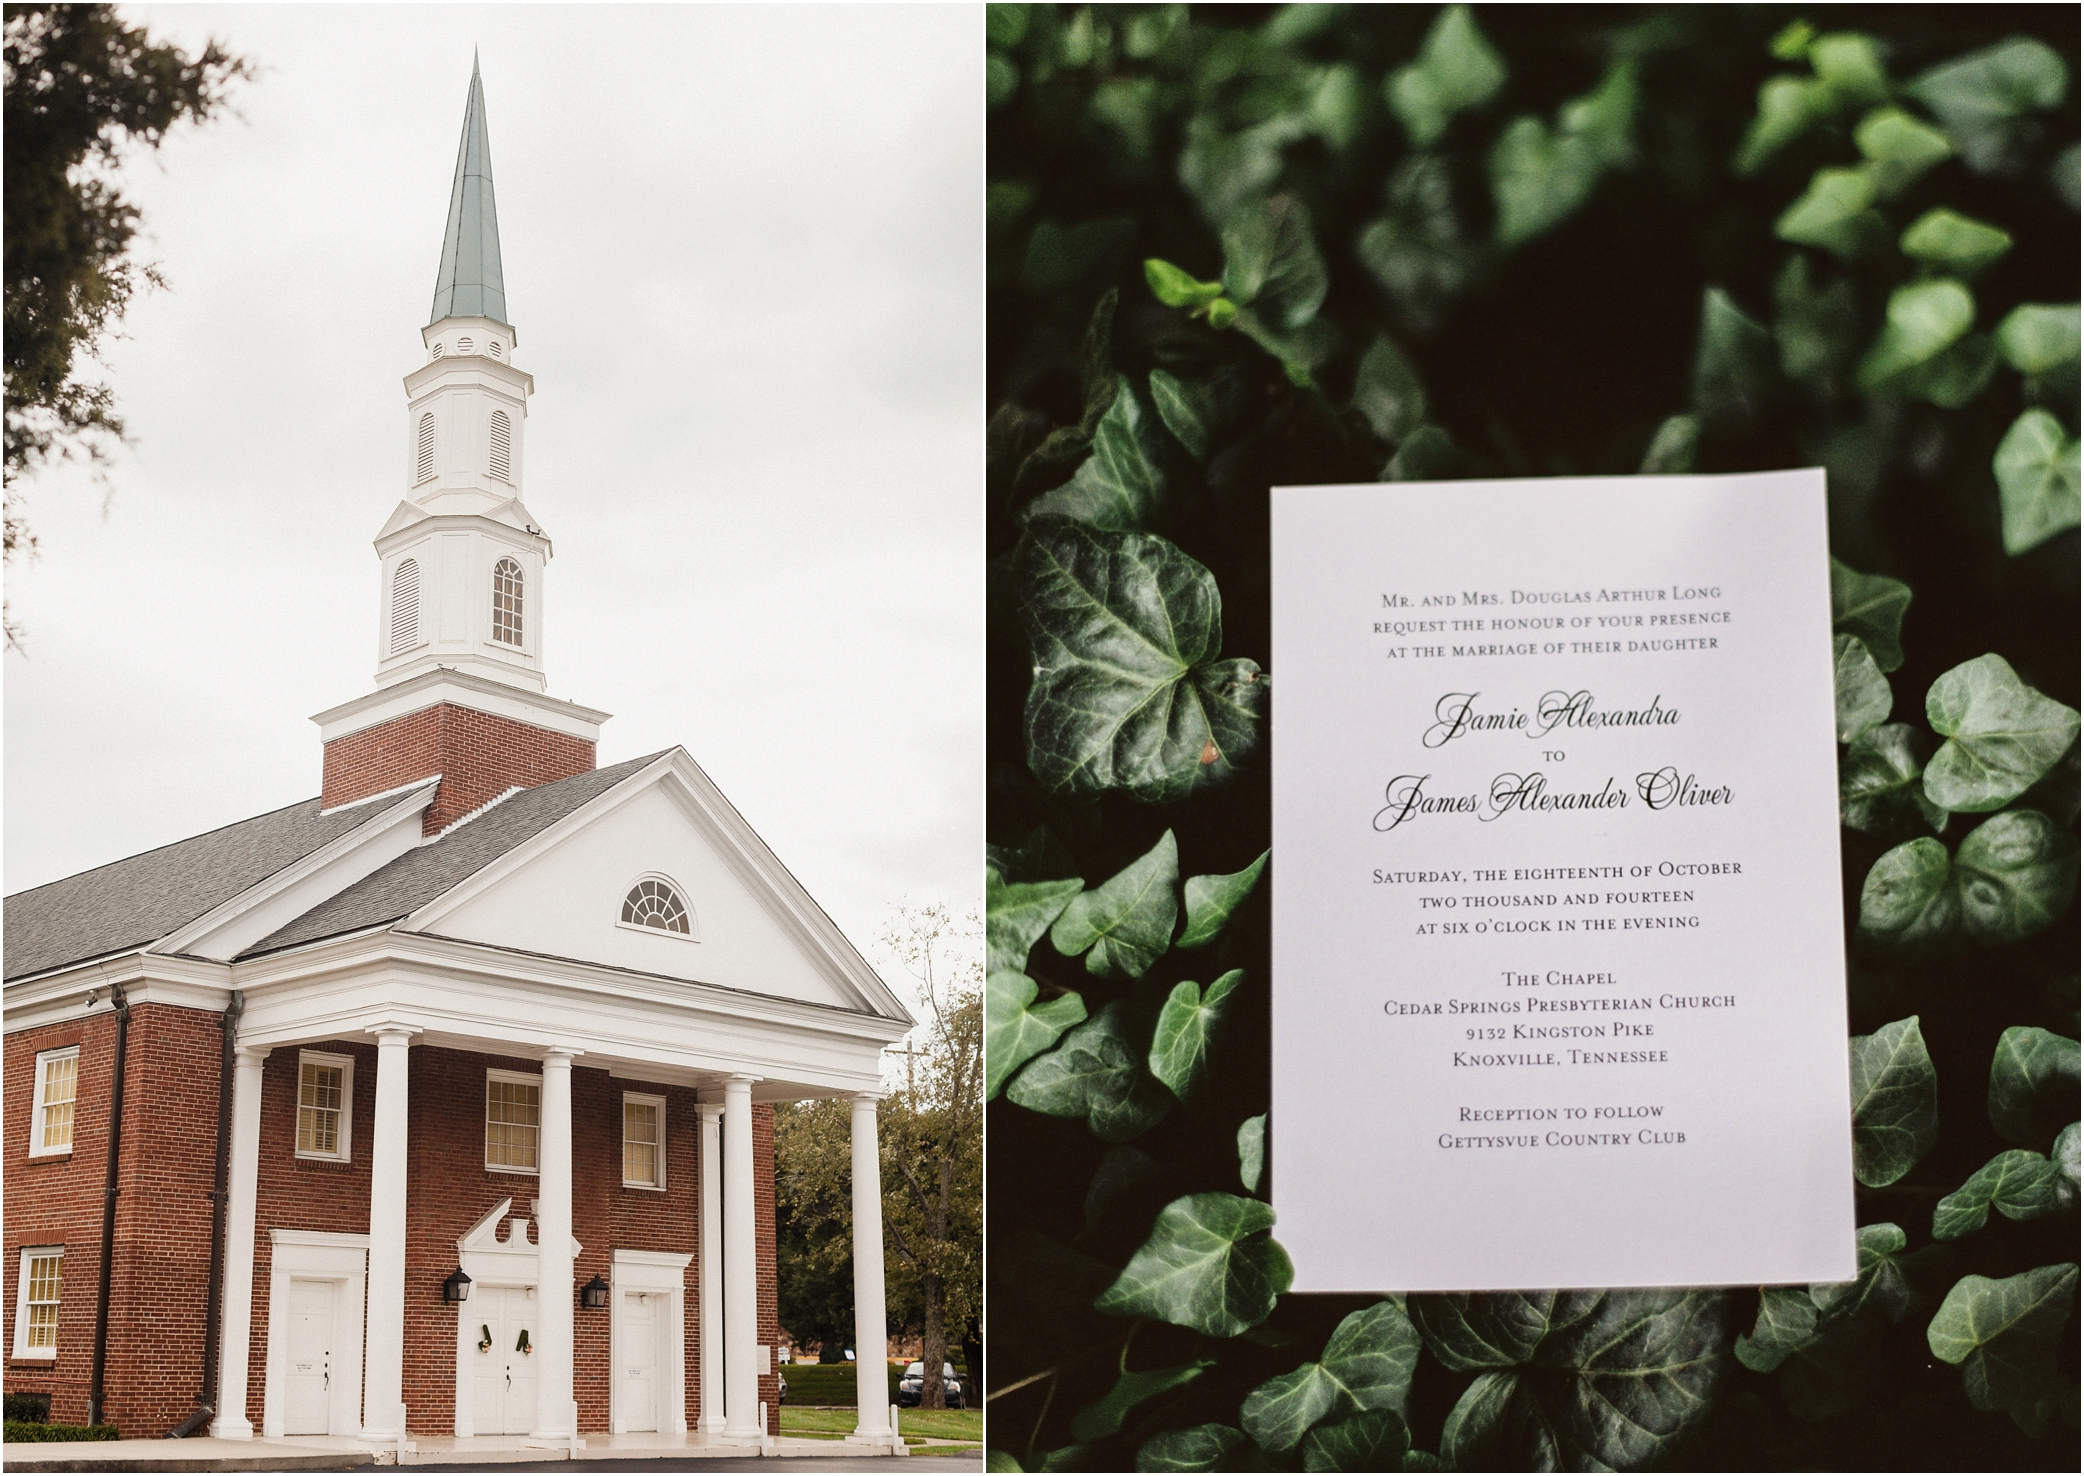 Gettysvue Country Club Wedding In Knoxville